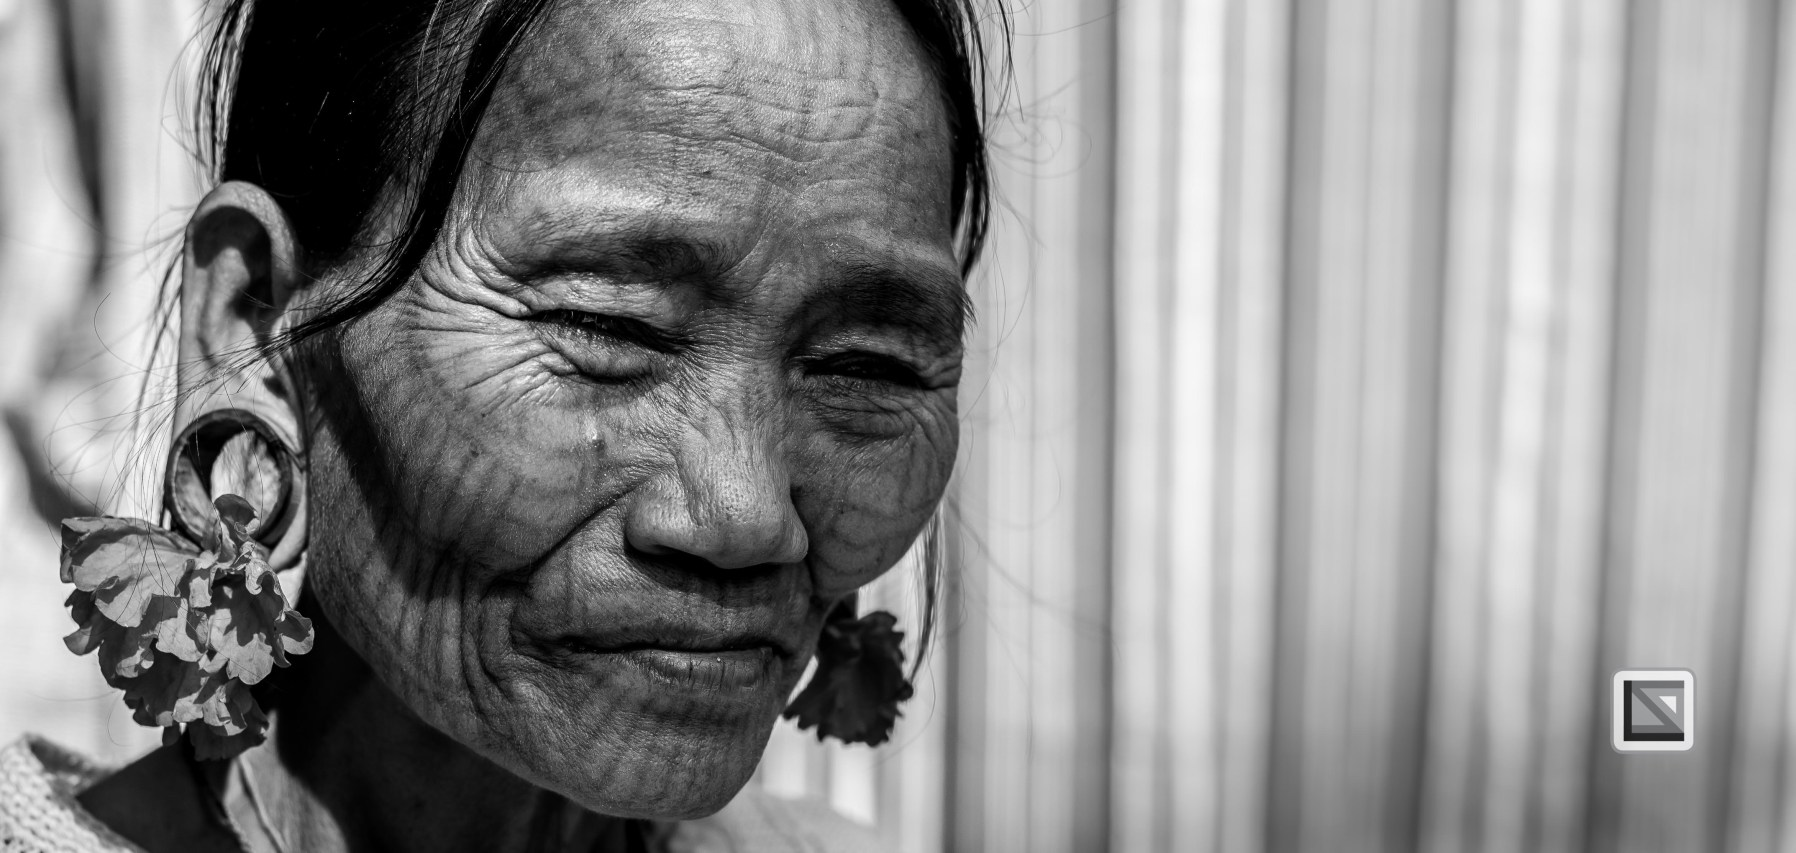 Myanmar Chin Tribe Portraits Black and White Mrauk-U-4